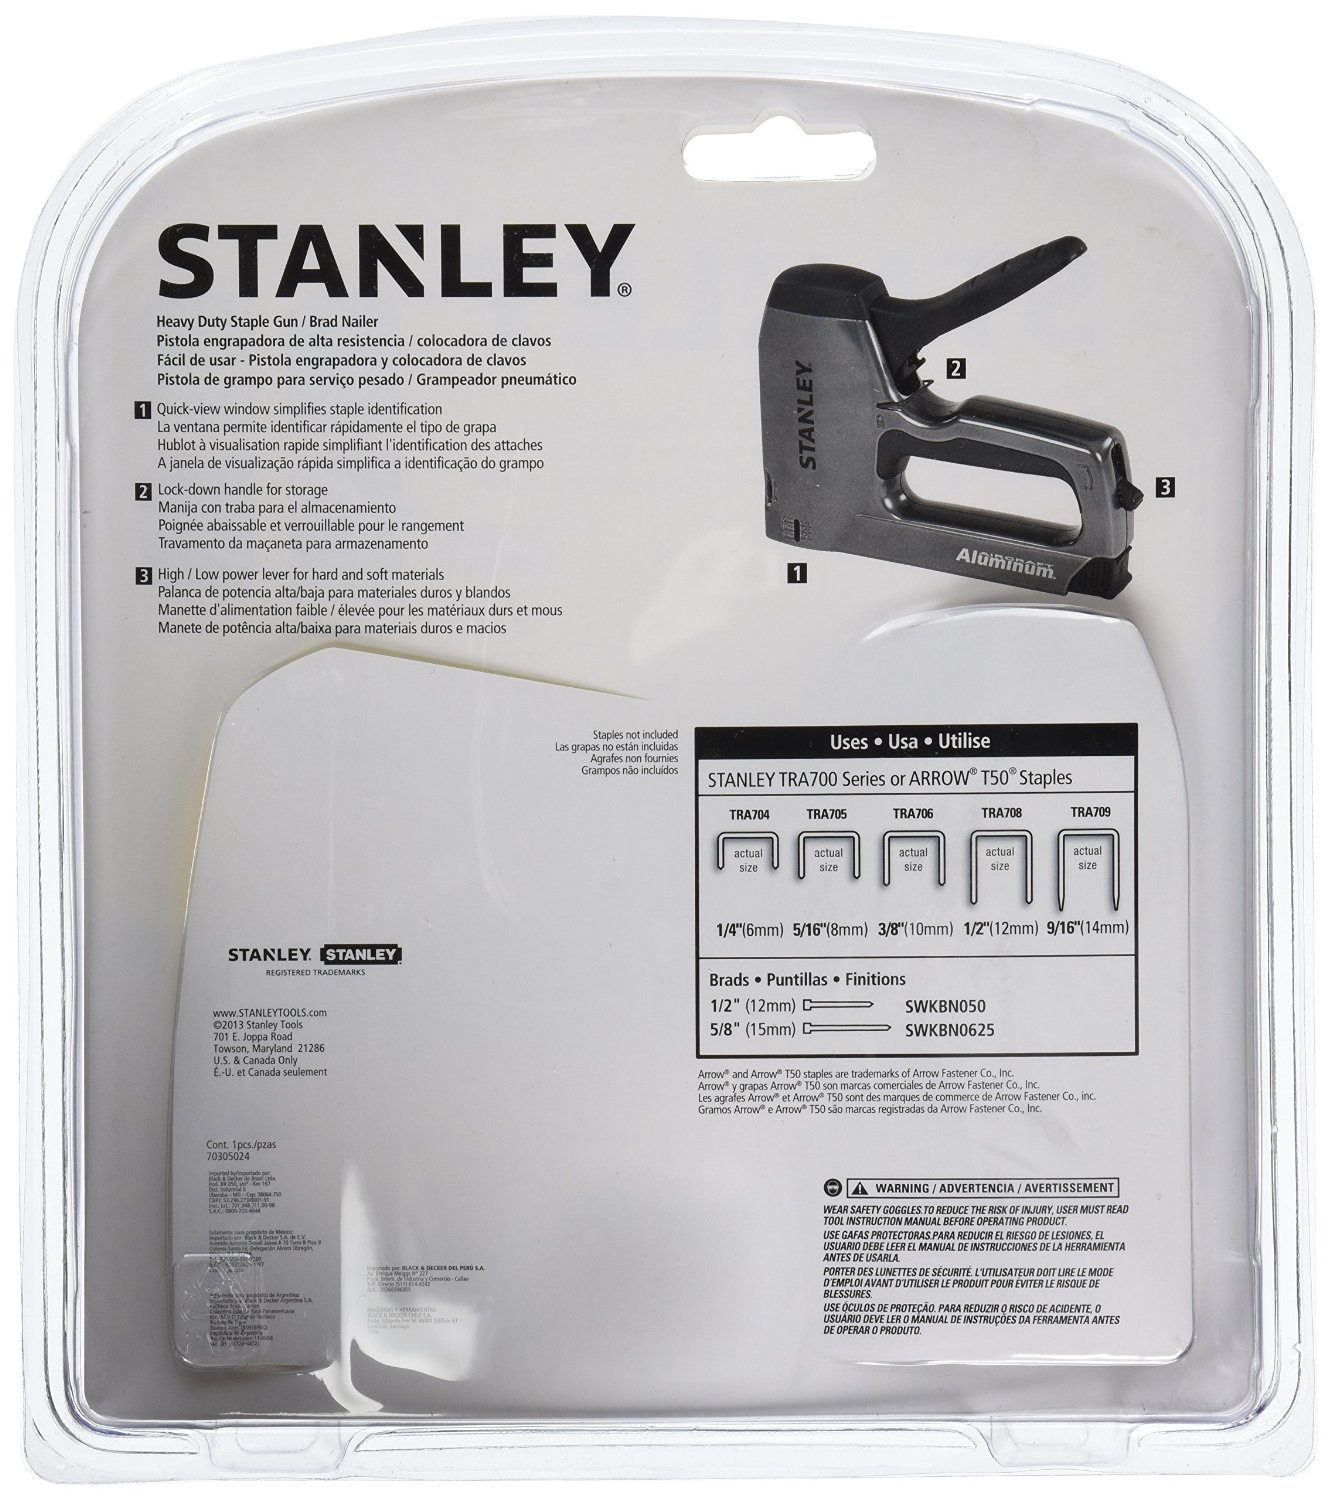 easysqueeze product works overtime as a staple gun brad nailer cable tacker and wire tacker